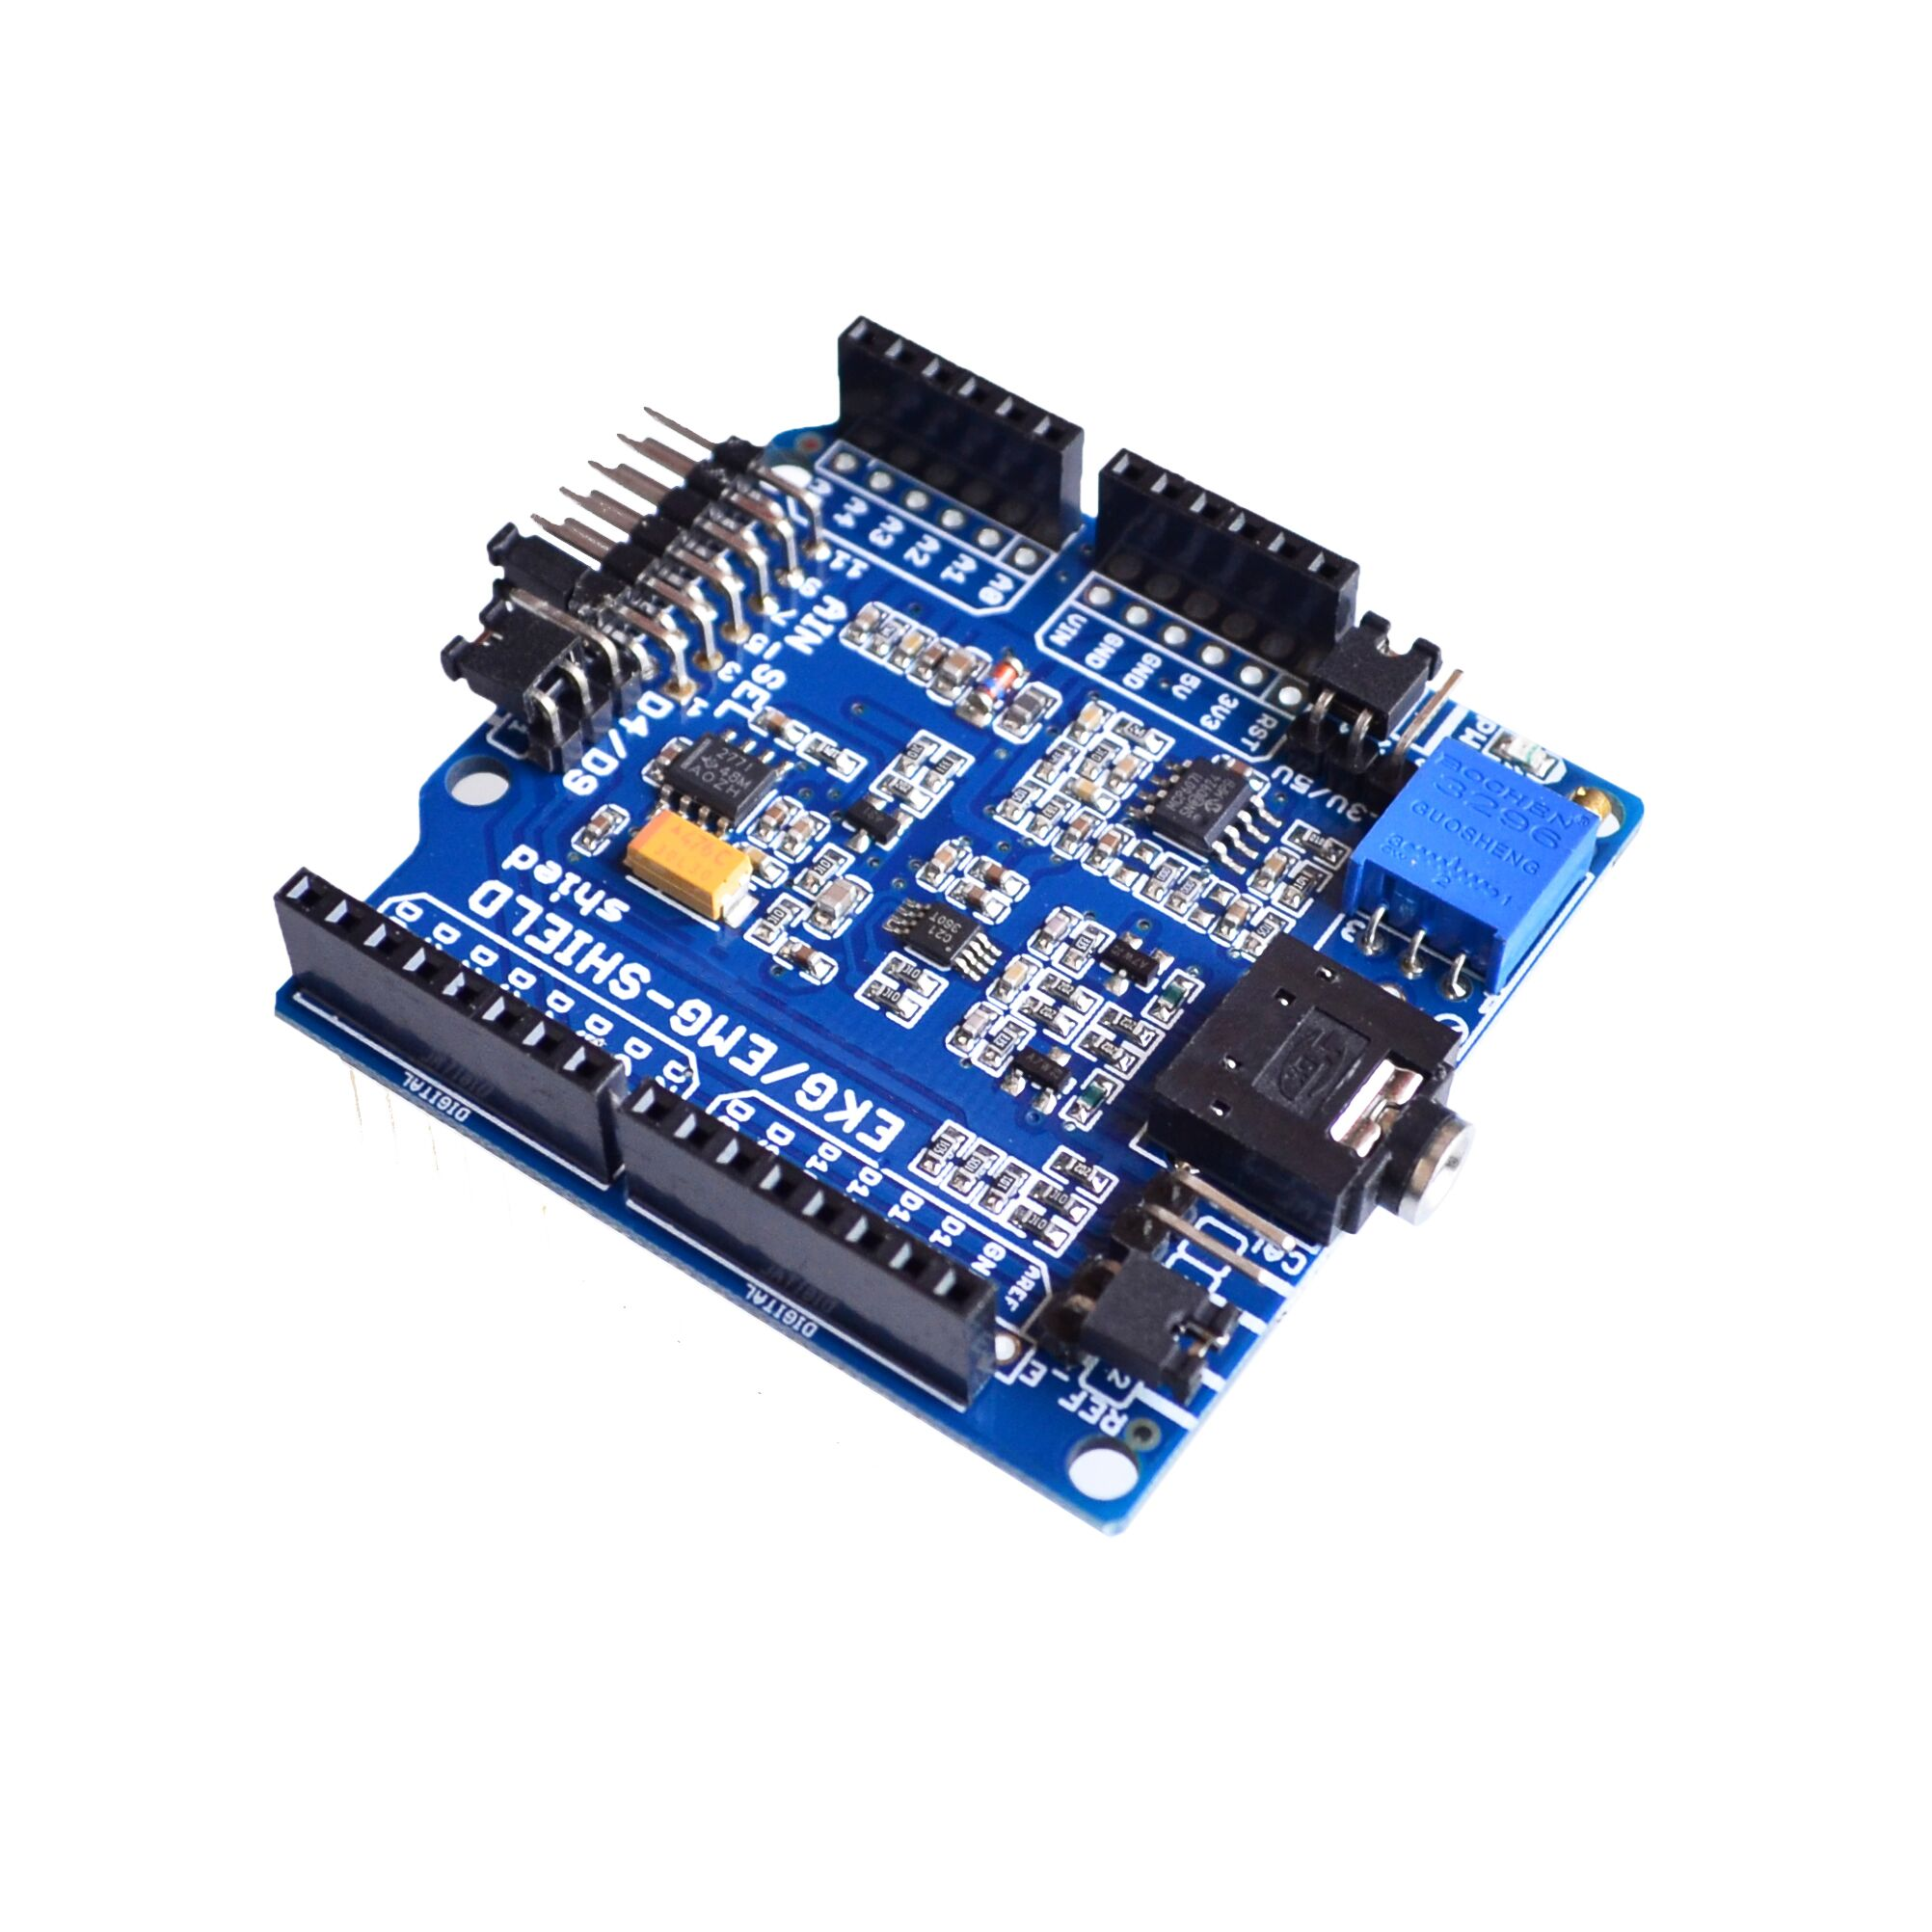 ECG/EKG/EMG Shield for Arduino with Cables and Electrodes